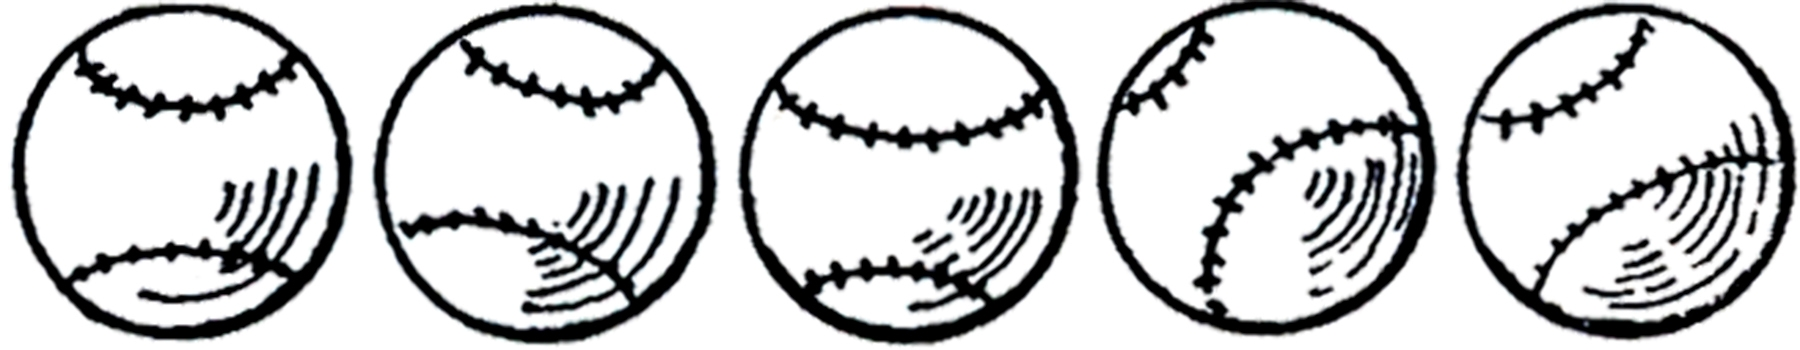 Baseball page border clipart best - Baseball Page Border Clipart Best